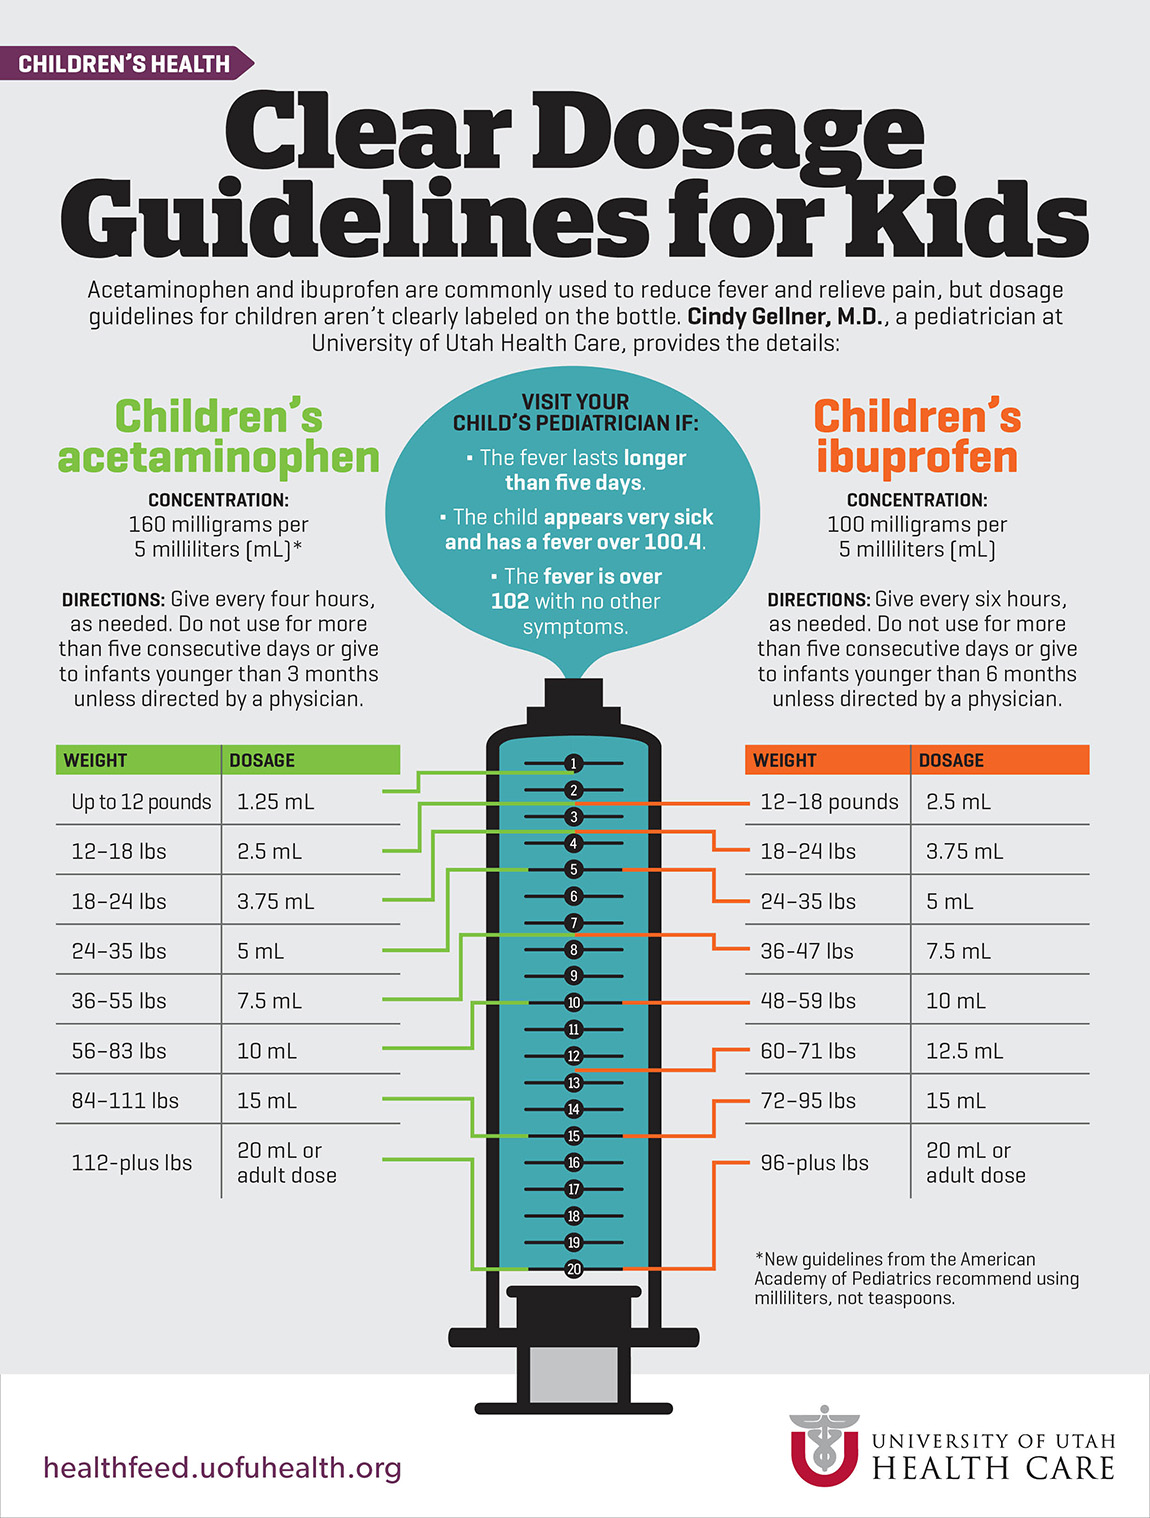 dosage guidelines for children | university of utah health